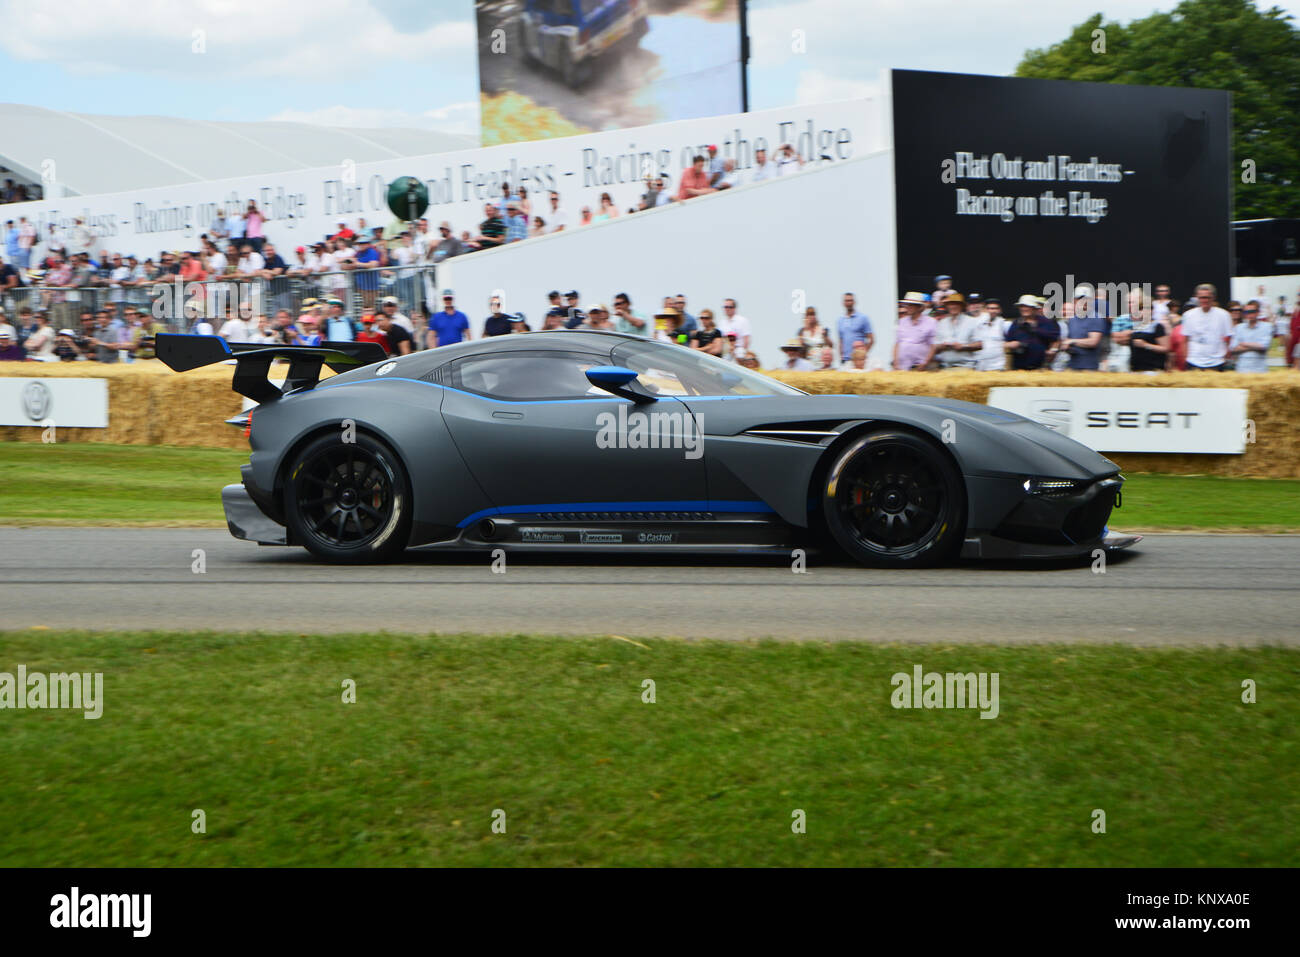 Aston Martin Vulcan, Goodwood FoS 2015, 2015, Classic, entertainment, fearless, Festival of Speed, Flat out, FoS, - Stock Image